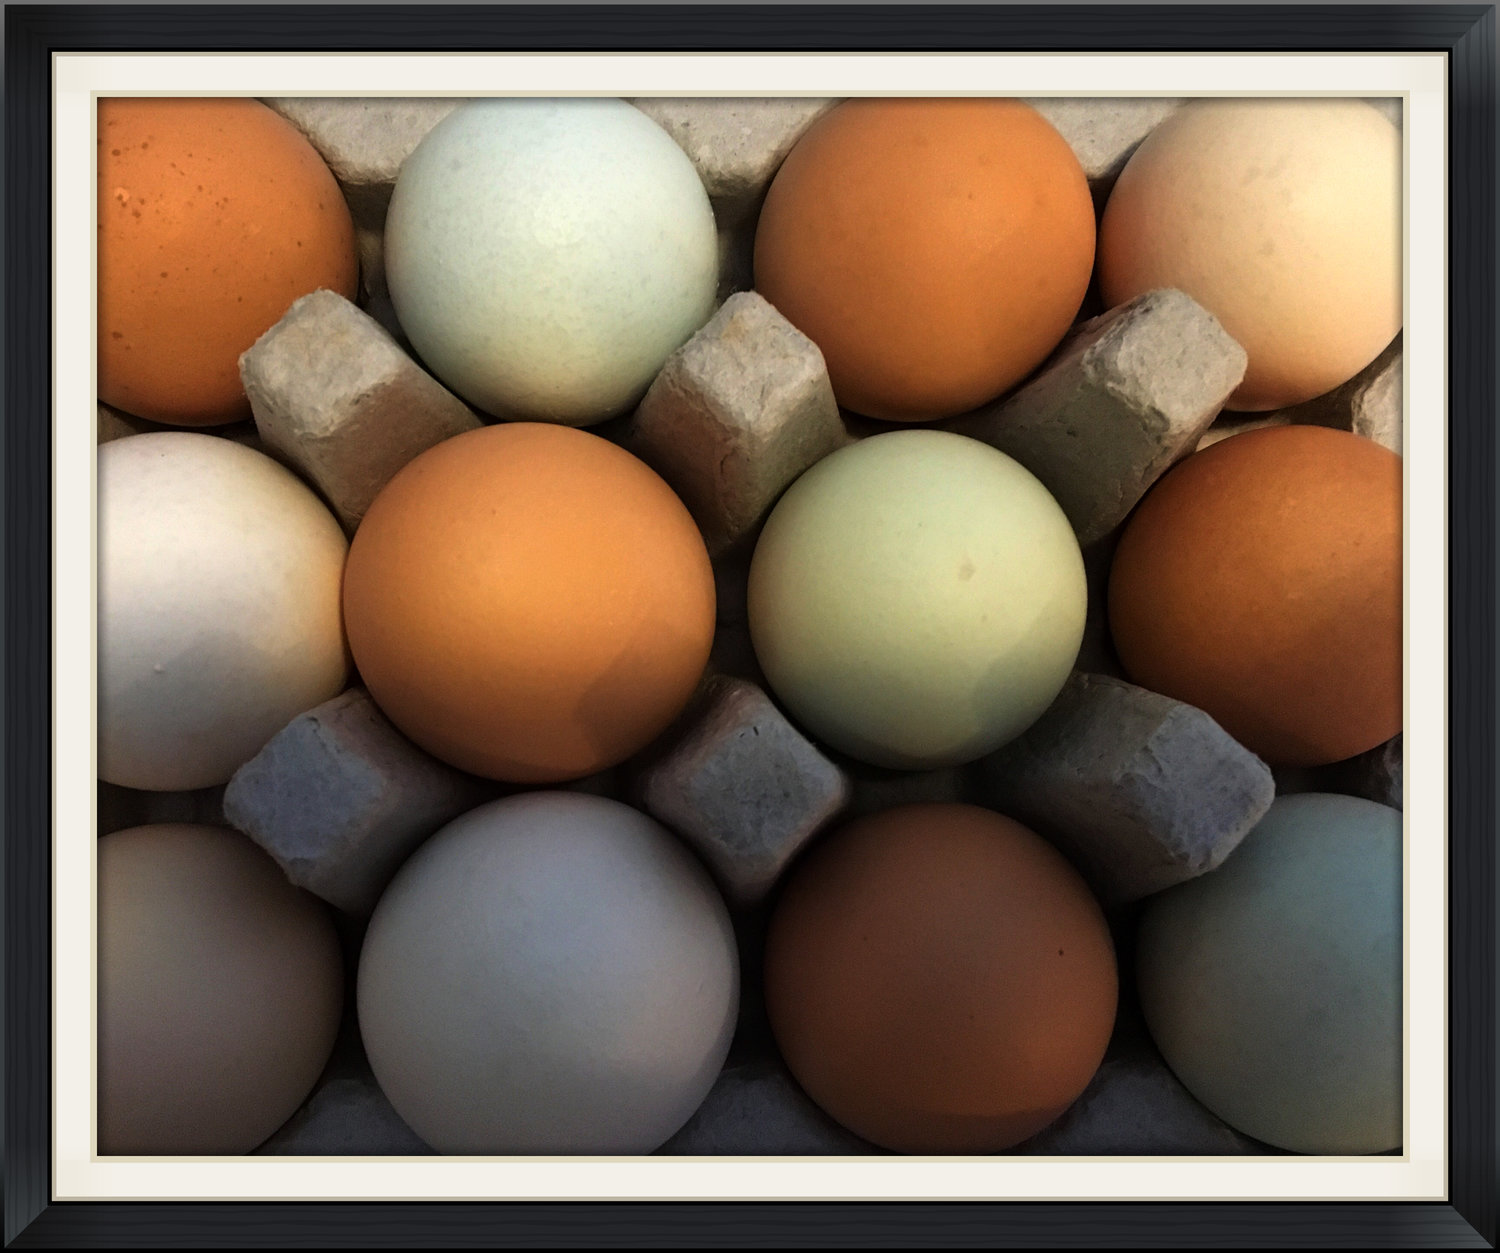 There is nothin' (IMHO) like farm-fresh eggs. One can find that and so much more at all of our local farmers' markets, scattered throughout the Upper Delaware River region